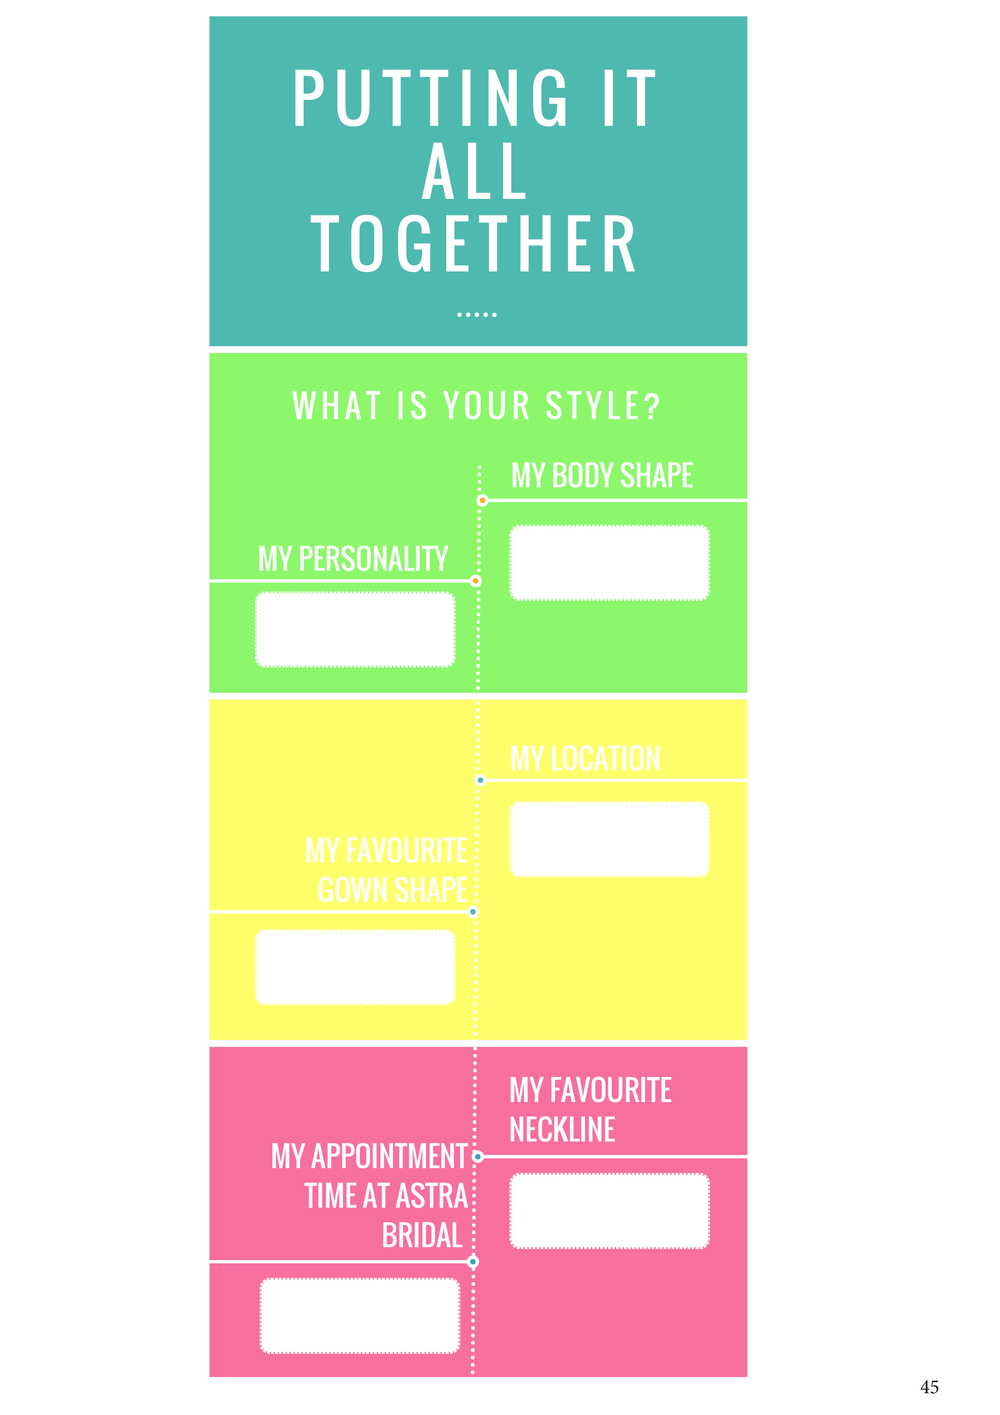 Putting it all together graphic | Bridal advice brought to you by Astra Bridal | www.borrowedandblue.kiwi